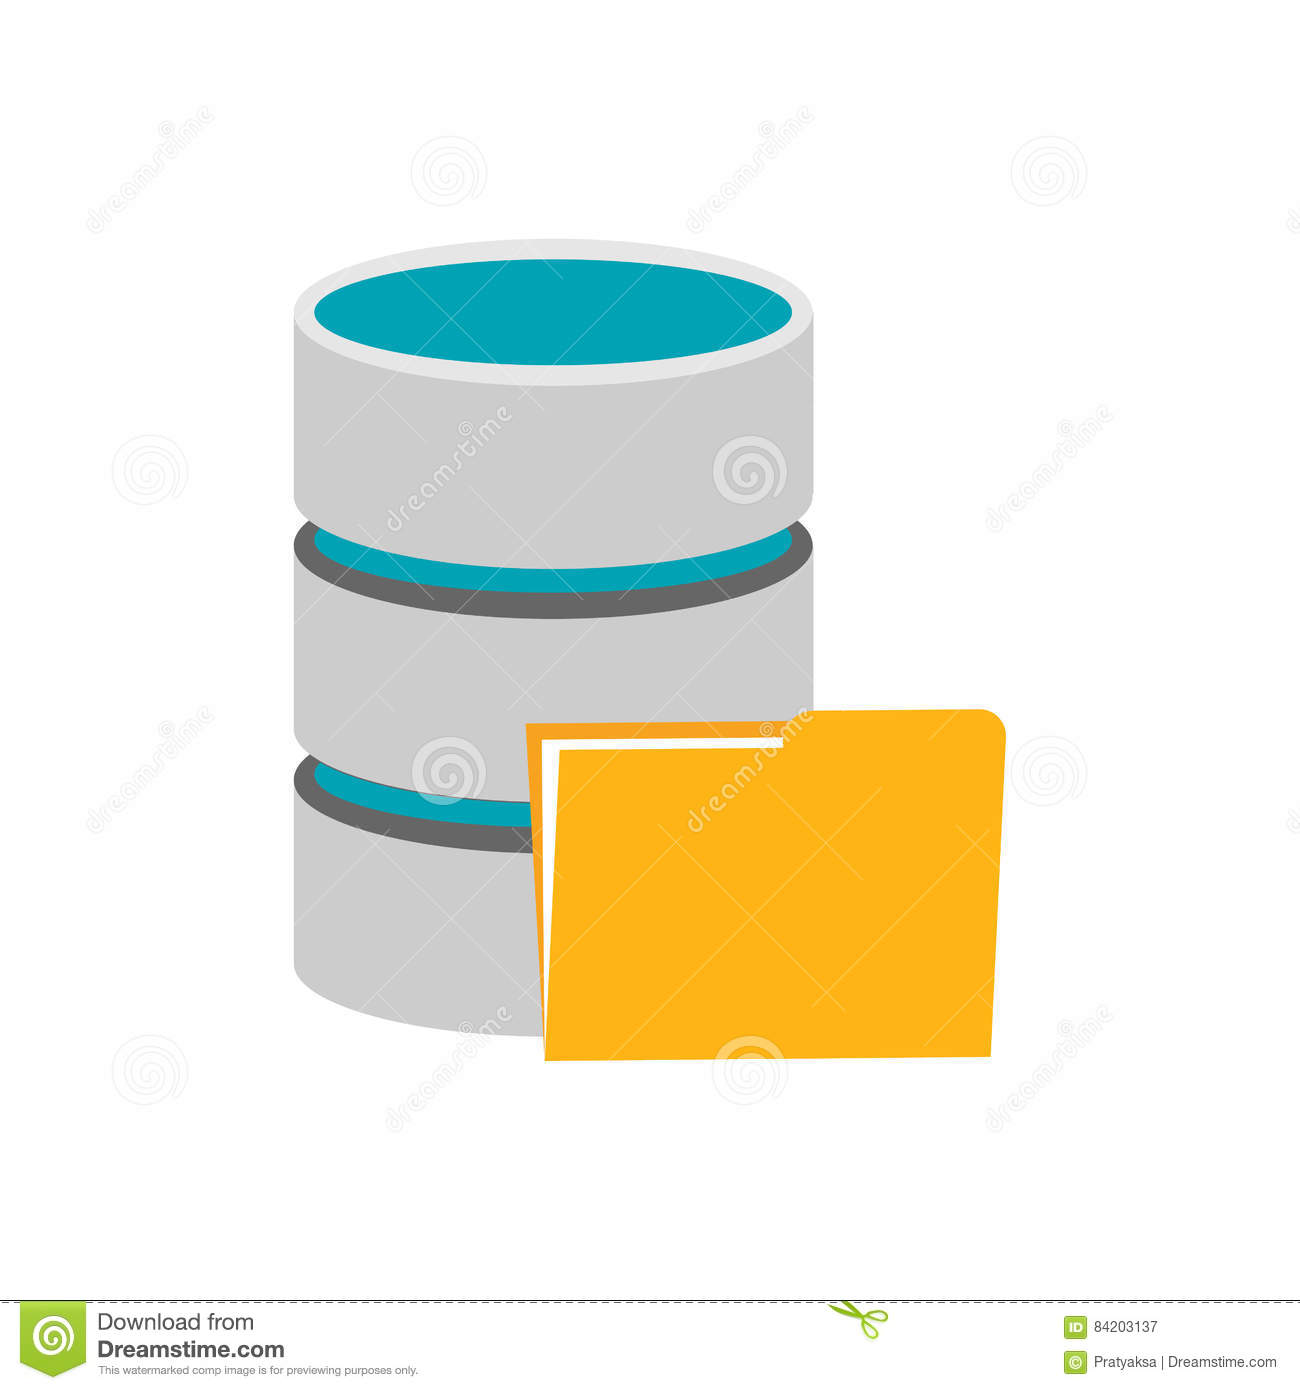 store database The primary motivation typically behind desires to store email in a database tends to be a desire to search through email quickly this is an understandable.